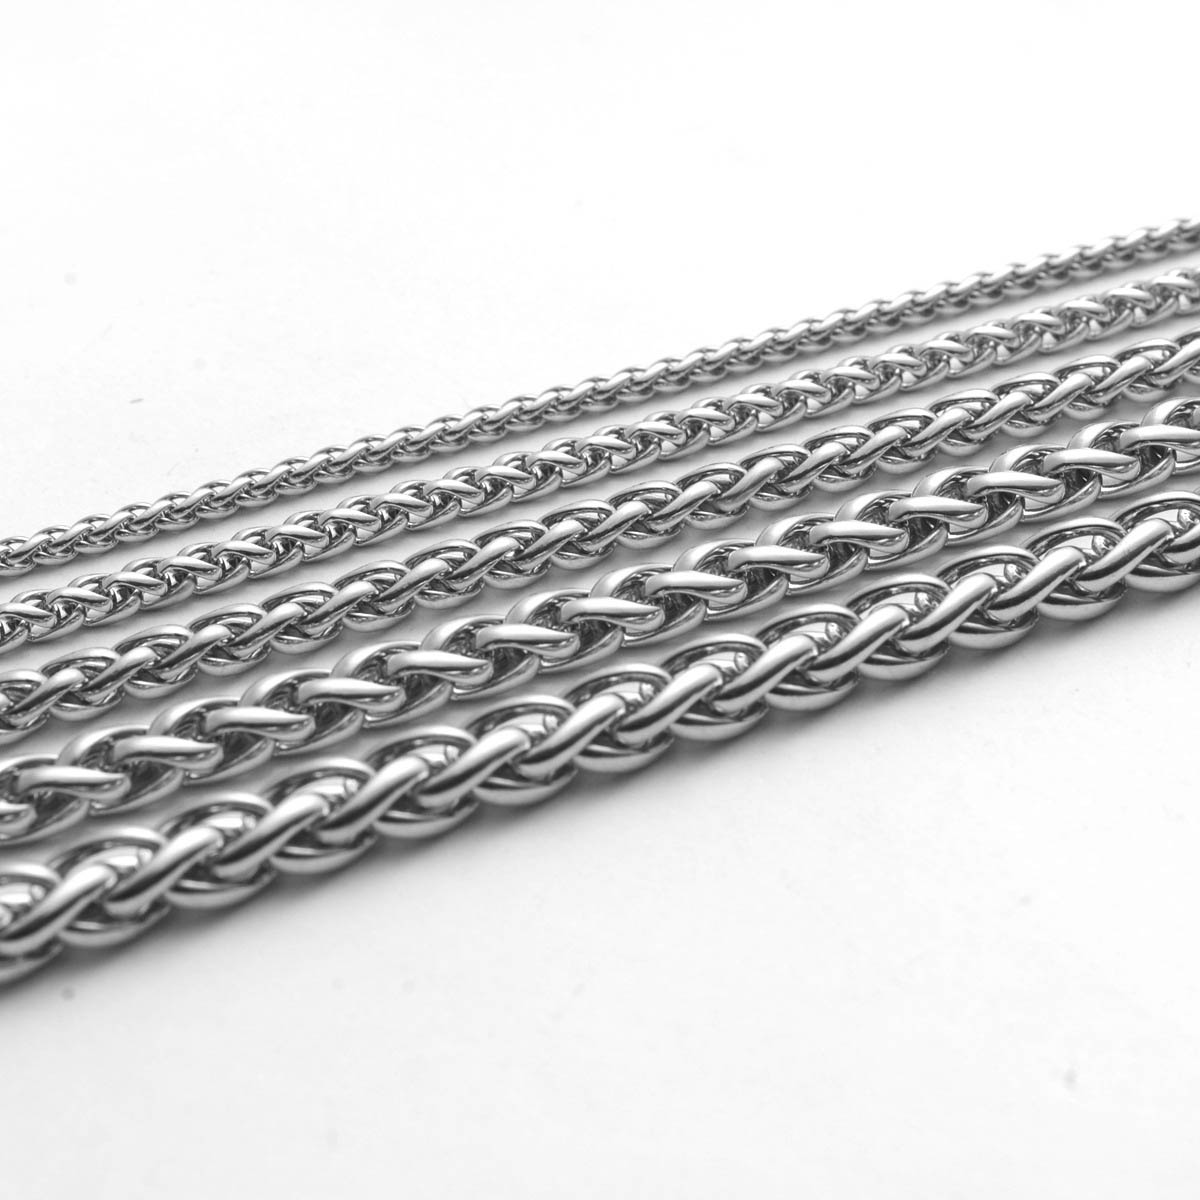 Fashion Keel Chain Male Stainless Steel Necklace 2.5/3/4/5/6mm Round Circle 20'' 27'' Basic Chain For Diy Jewelry Making Supply